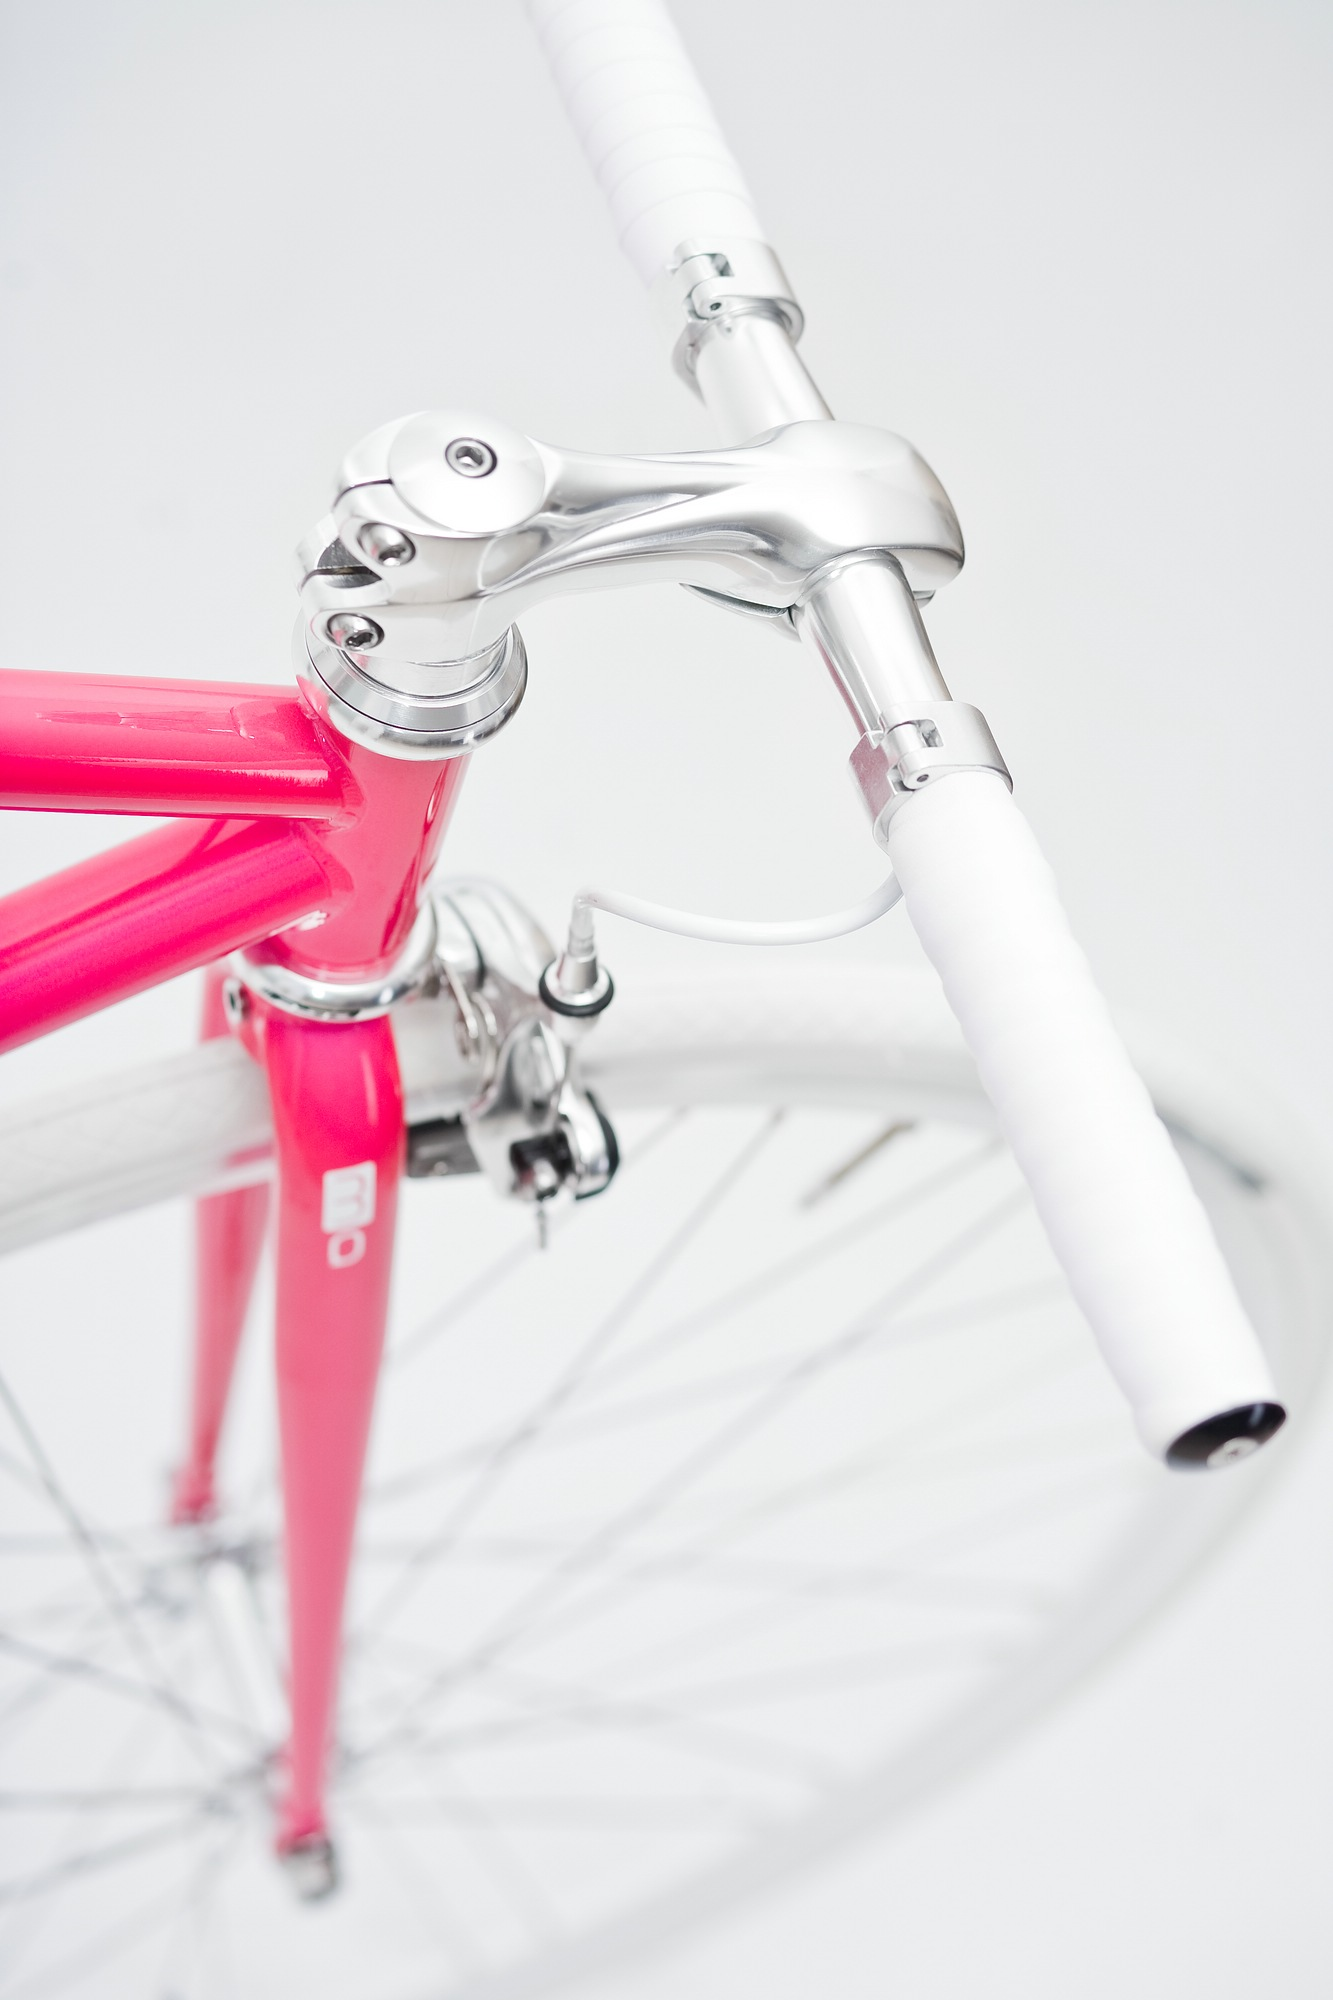 Single Speed Bike pink and white grips